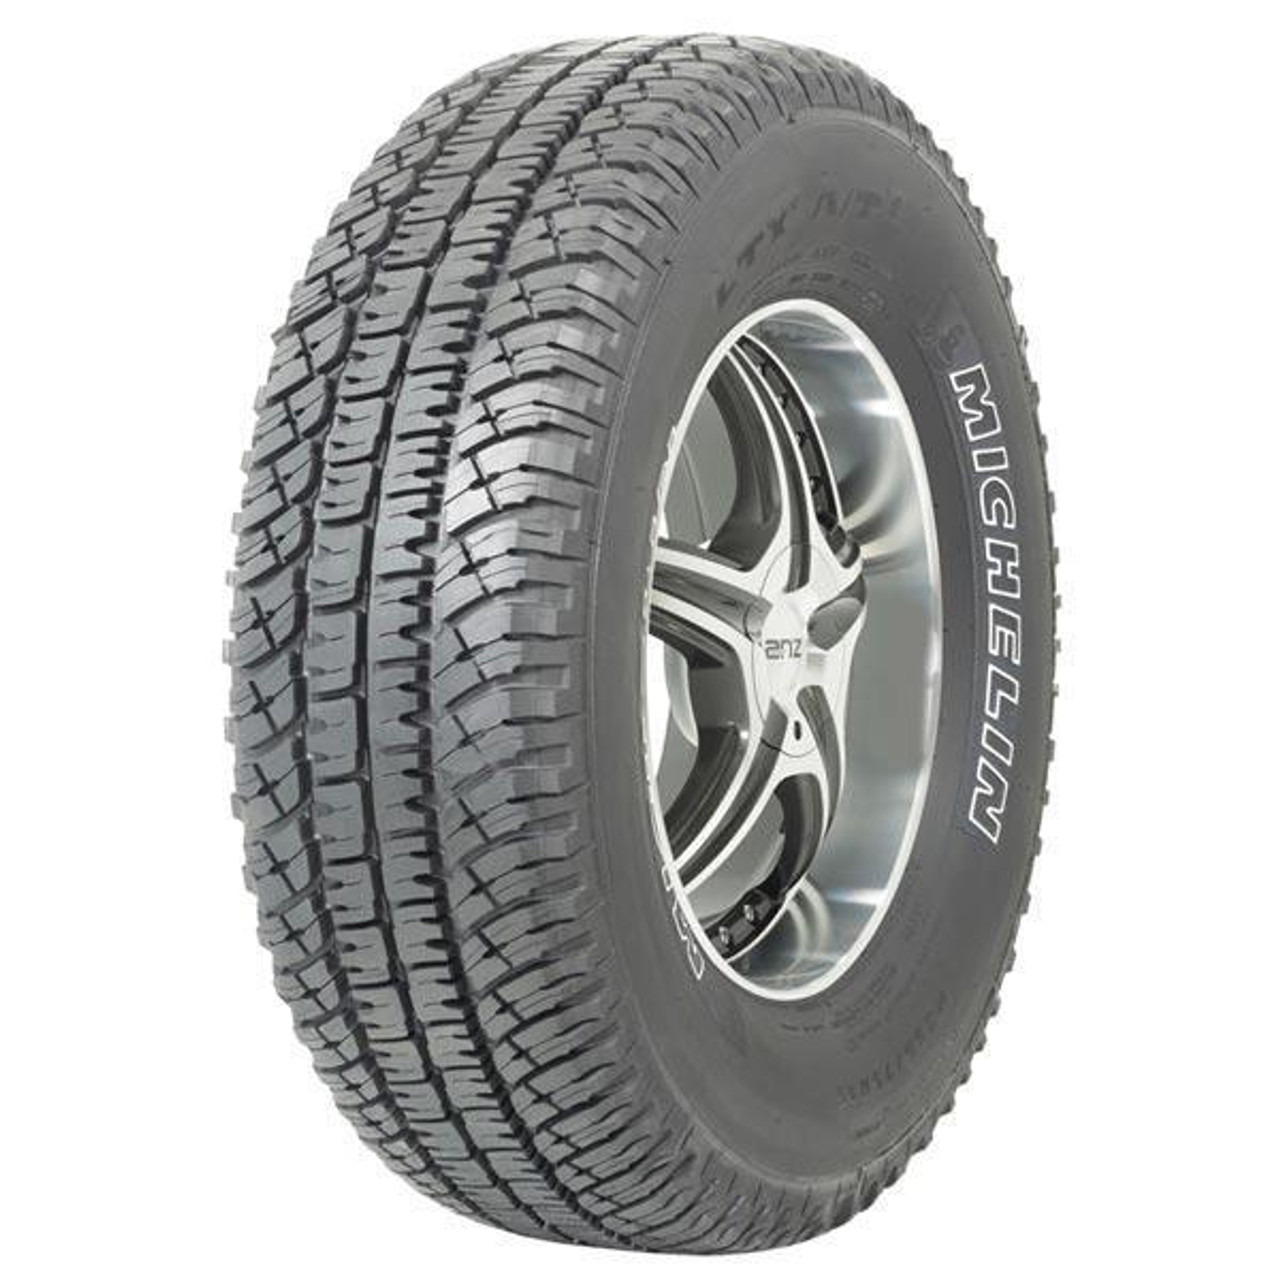 Cheapest Tires Online Free Shipping >> MICHELIN® Ltx A/T2 (Lt) 265/70R18 Tires   9068   265 70 18 ...